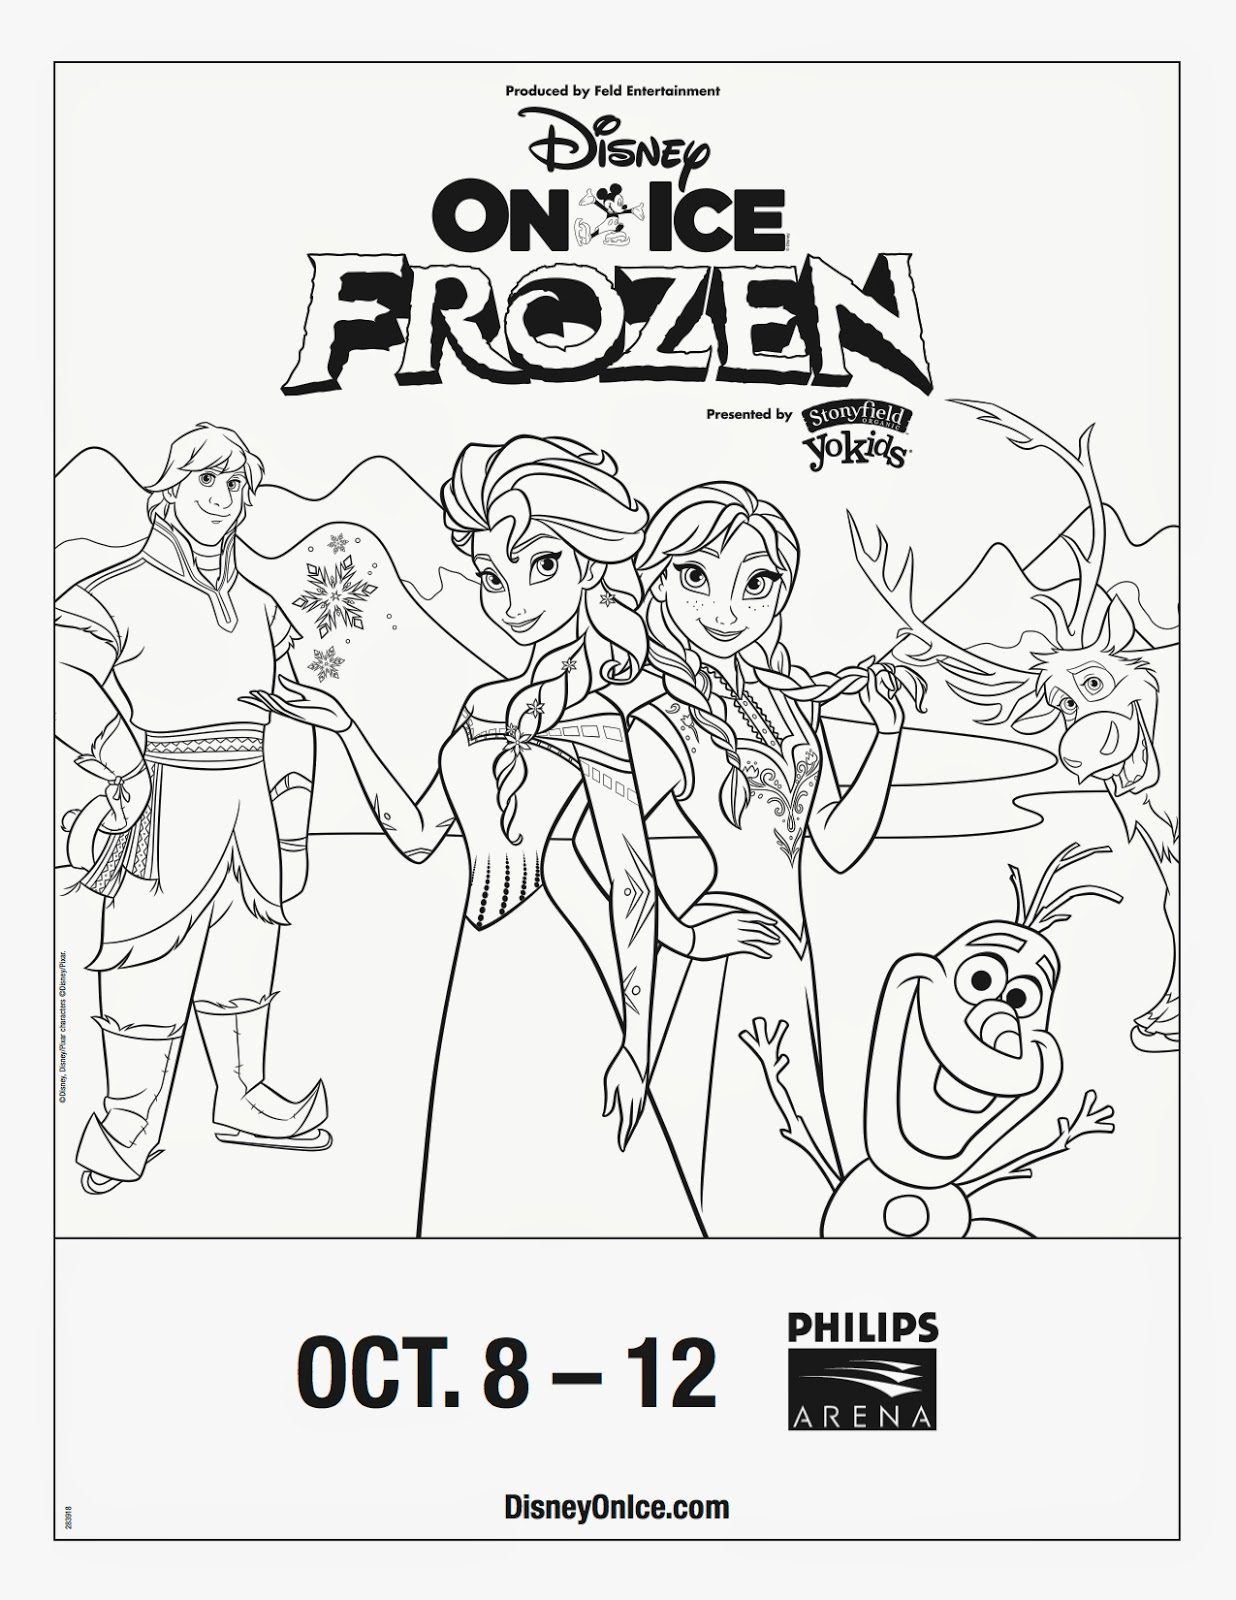 Disney On Ice Frozen Coloring Sheet And Trivia